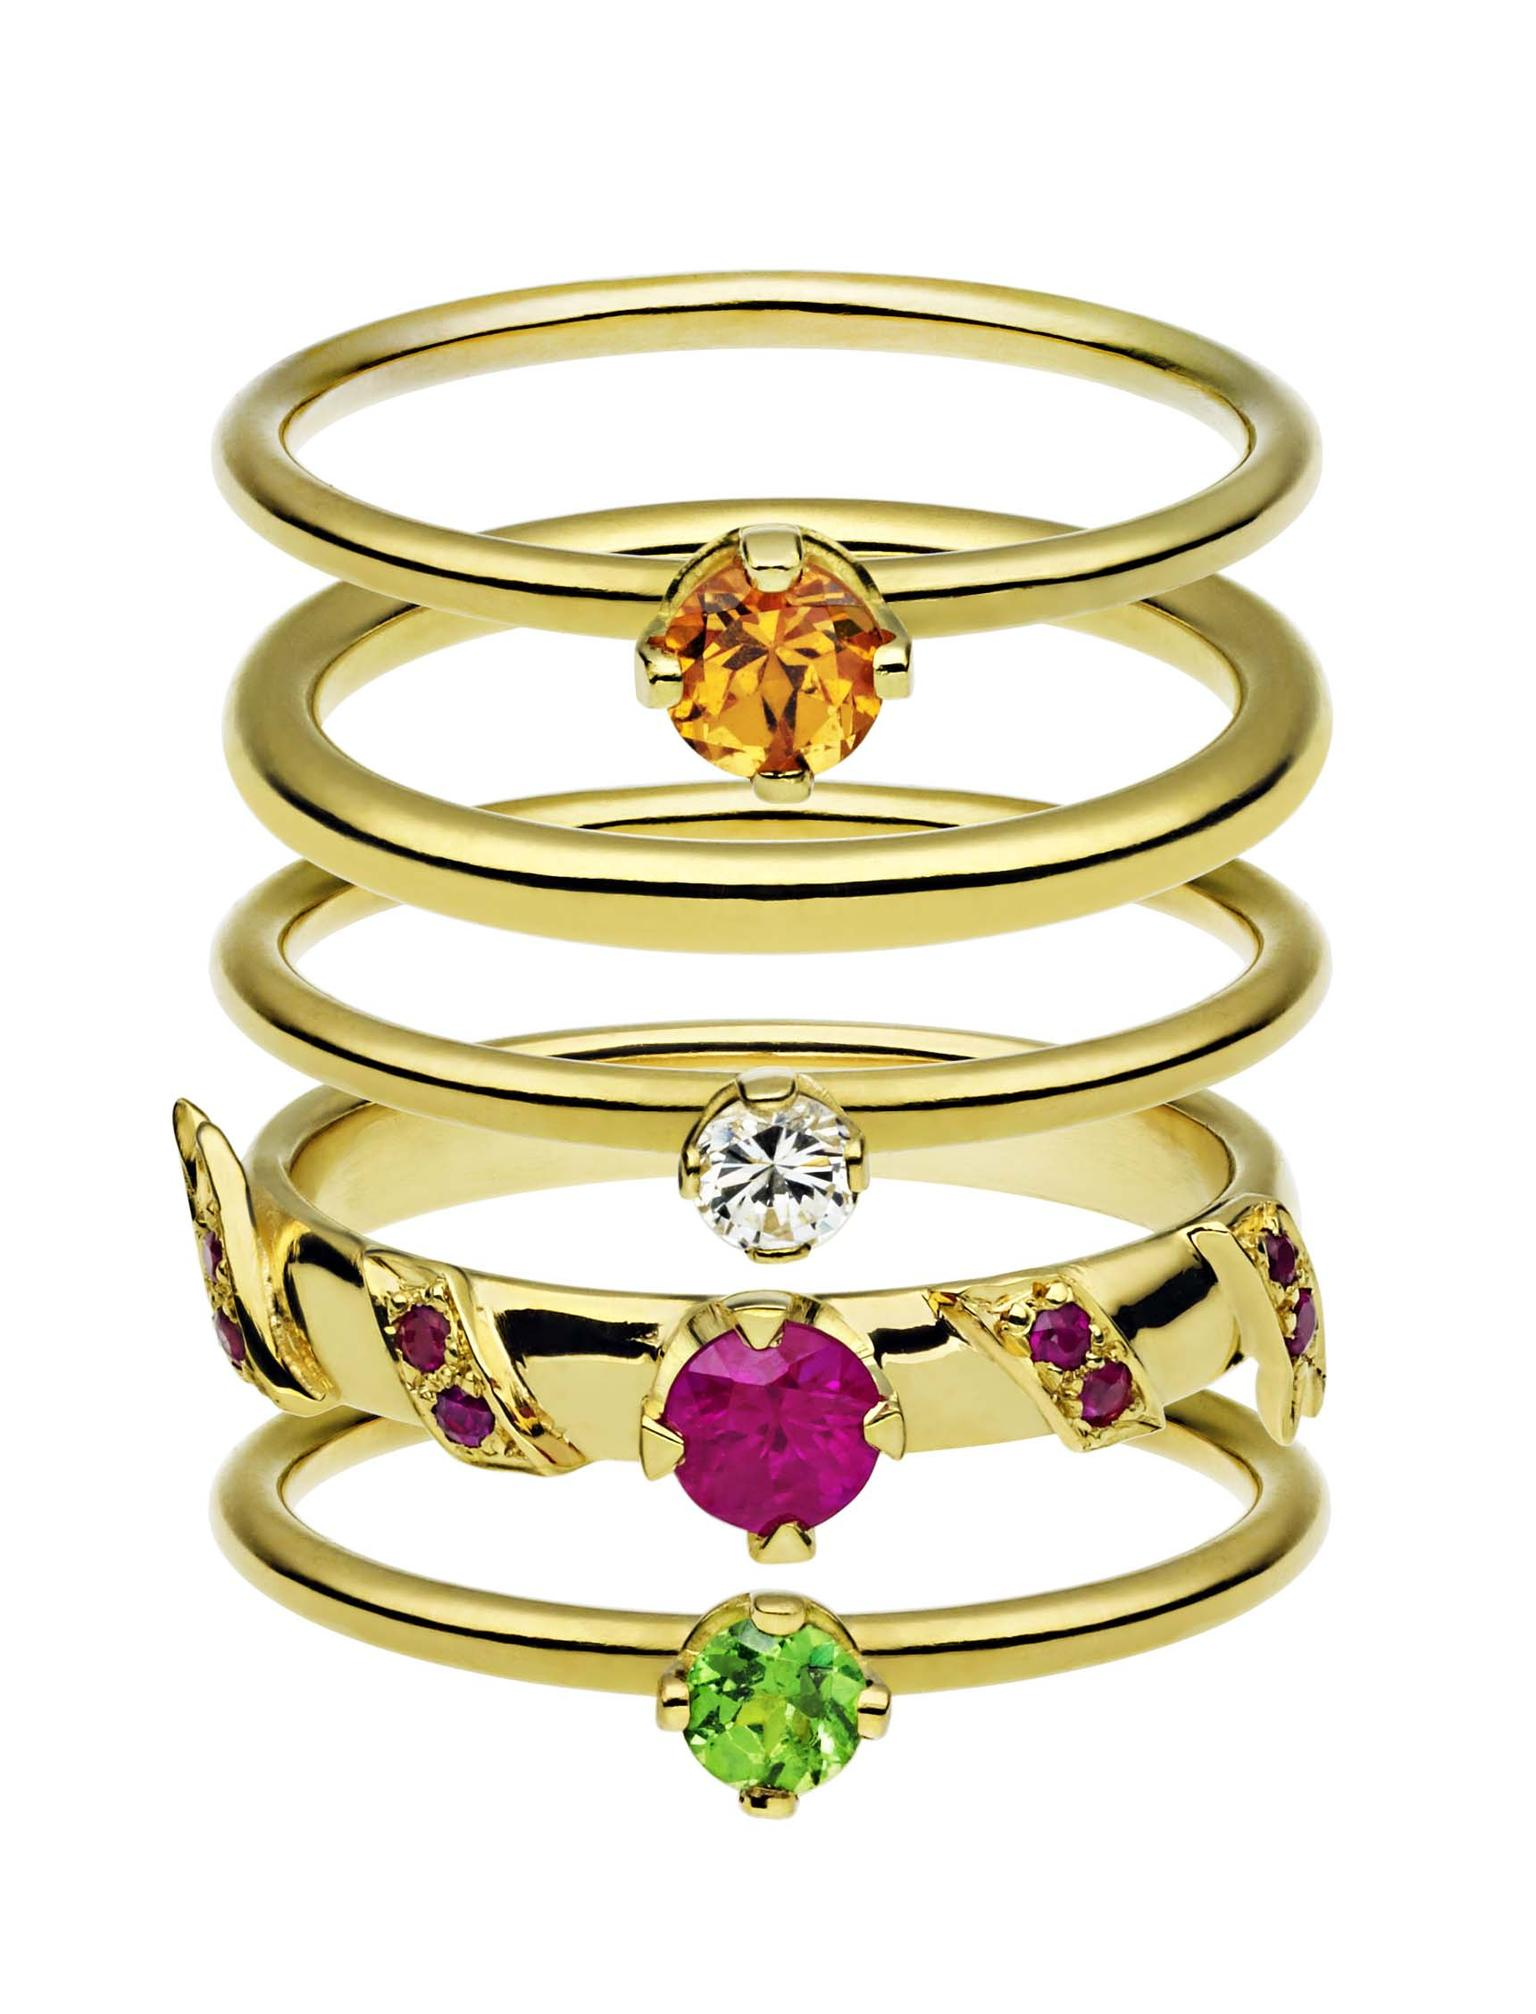 Ana de Costa stacking rings in yellow gold set with, top to bottom, a mandarin garnet, diamond, rubies and a tsavorite. From the Alchemy collection.